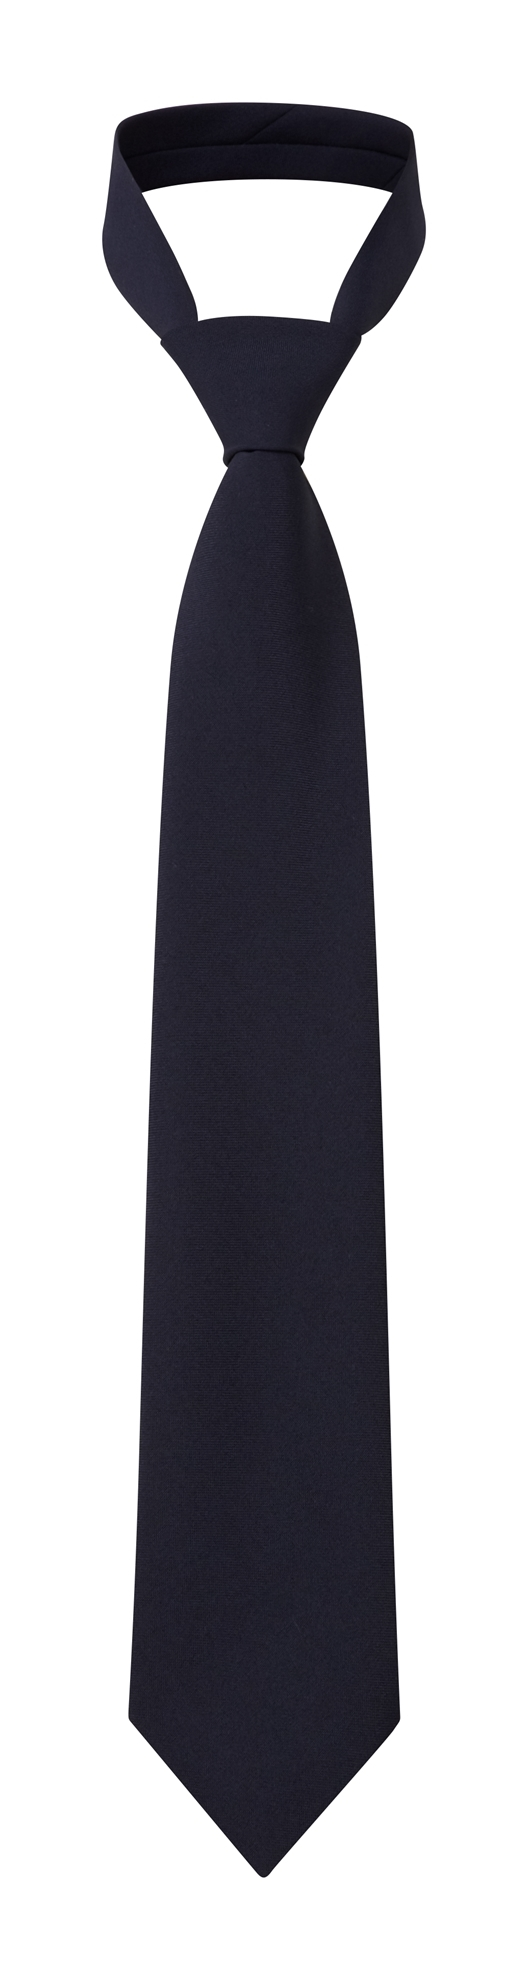 Picture of Plain Tie - Navy